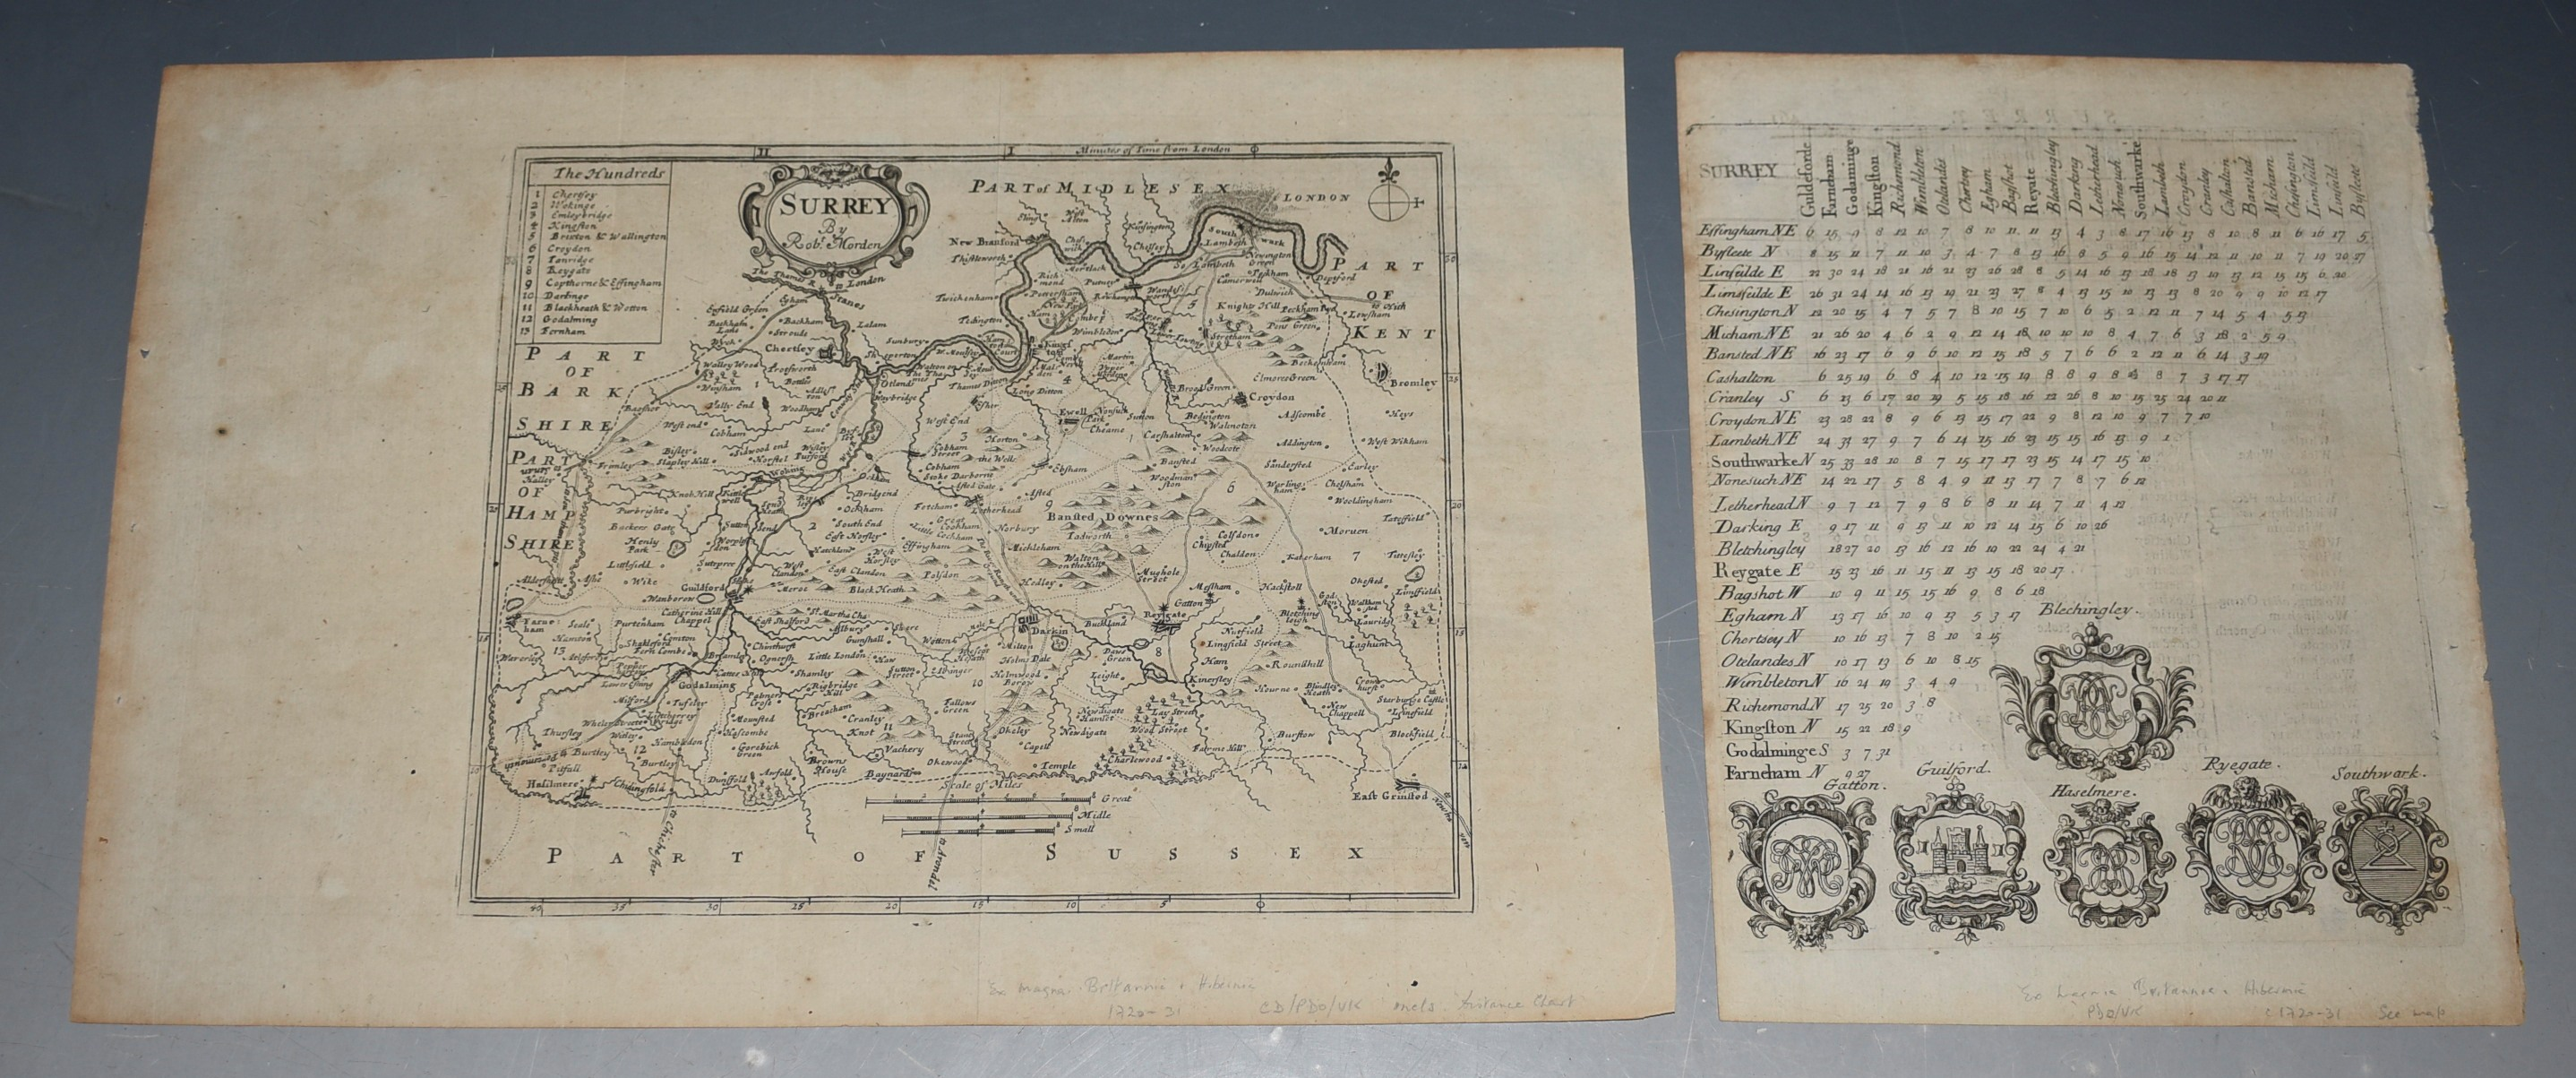 Image for ORIGINAL ENGRAVED ANTIQUE MAP OF SURREY With extra engraved plate of Distances.